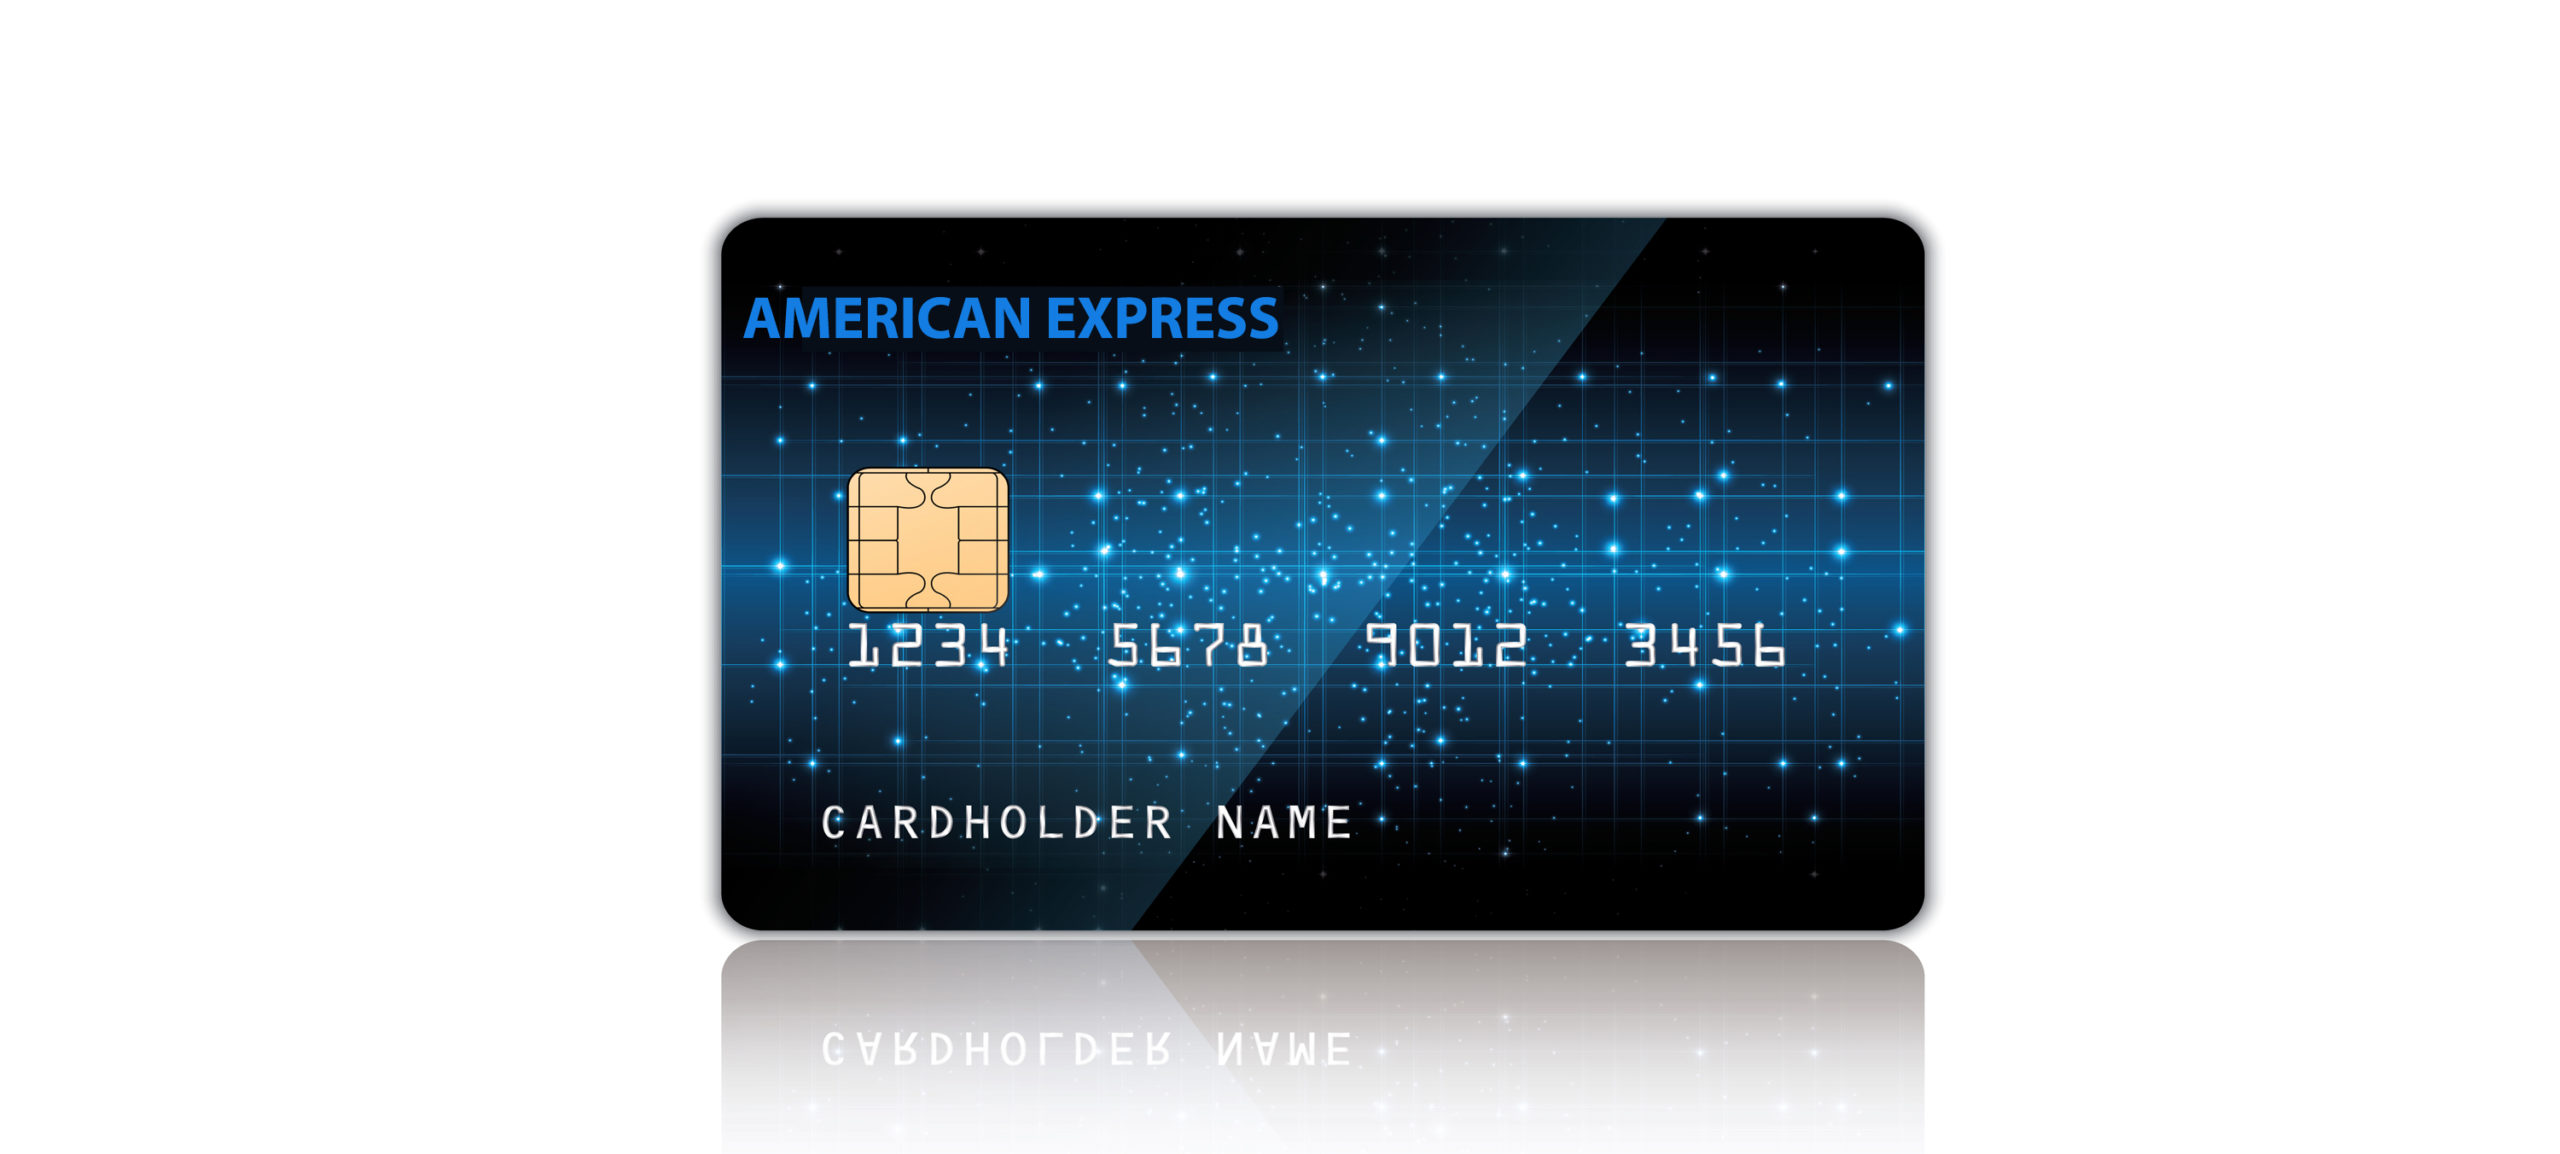 Internal Problems Within American Express